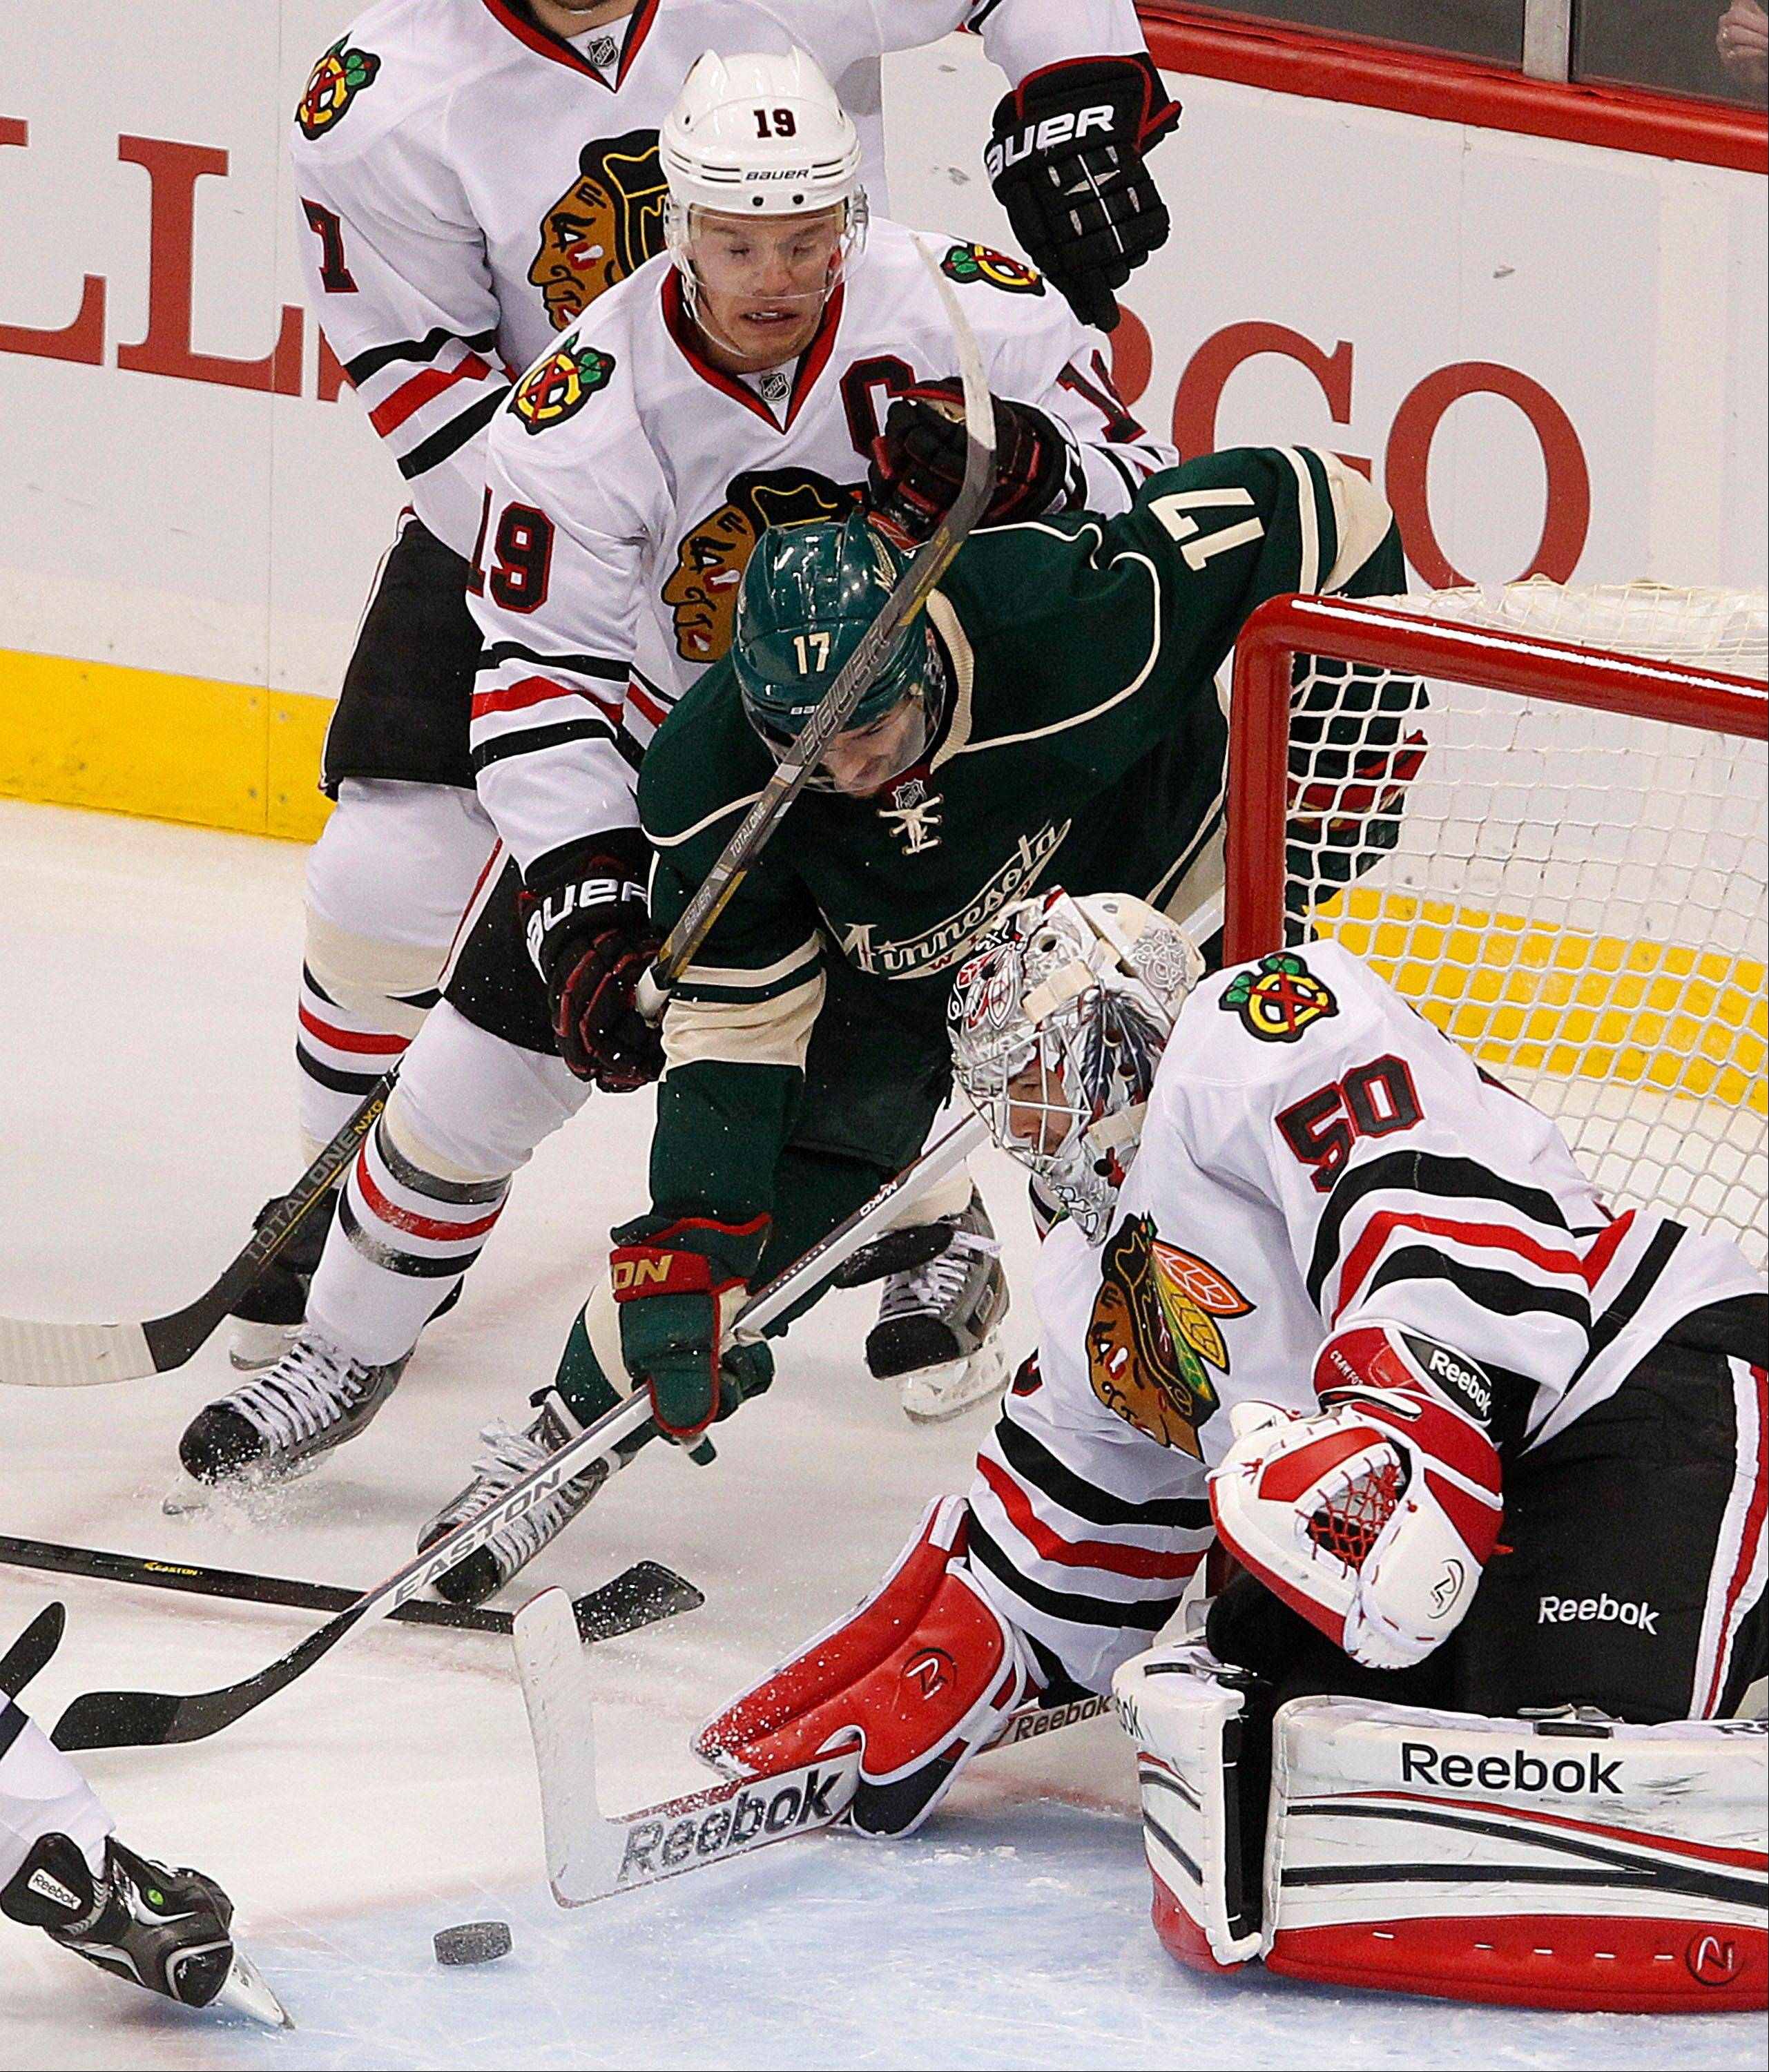 Chicago Blackhawks' goalie Corey Crawford blocks a shot by Minnesota Wild's Torrey Mitchell in the first period.